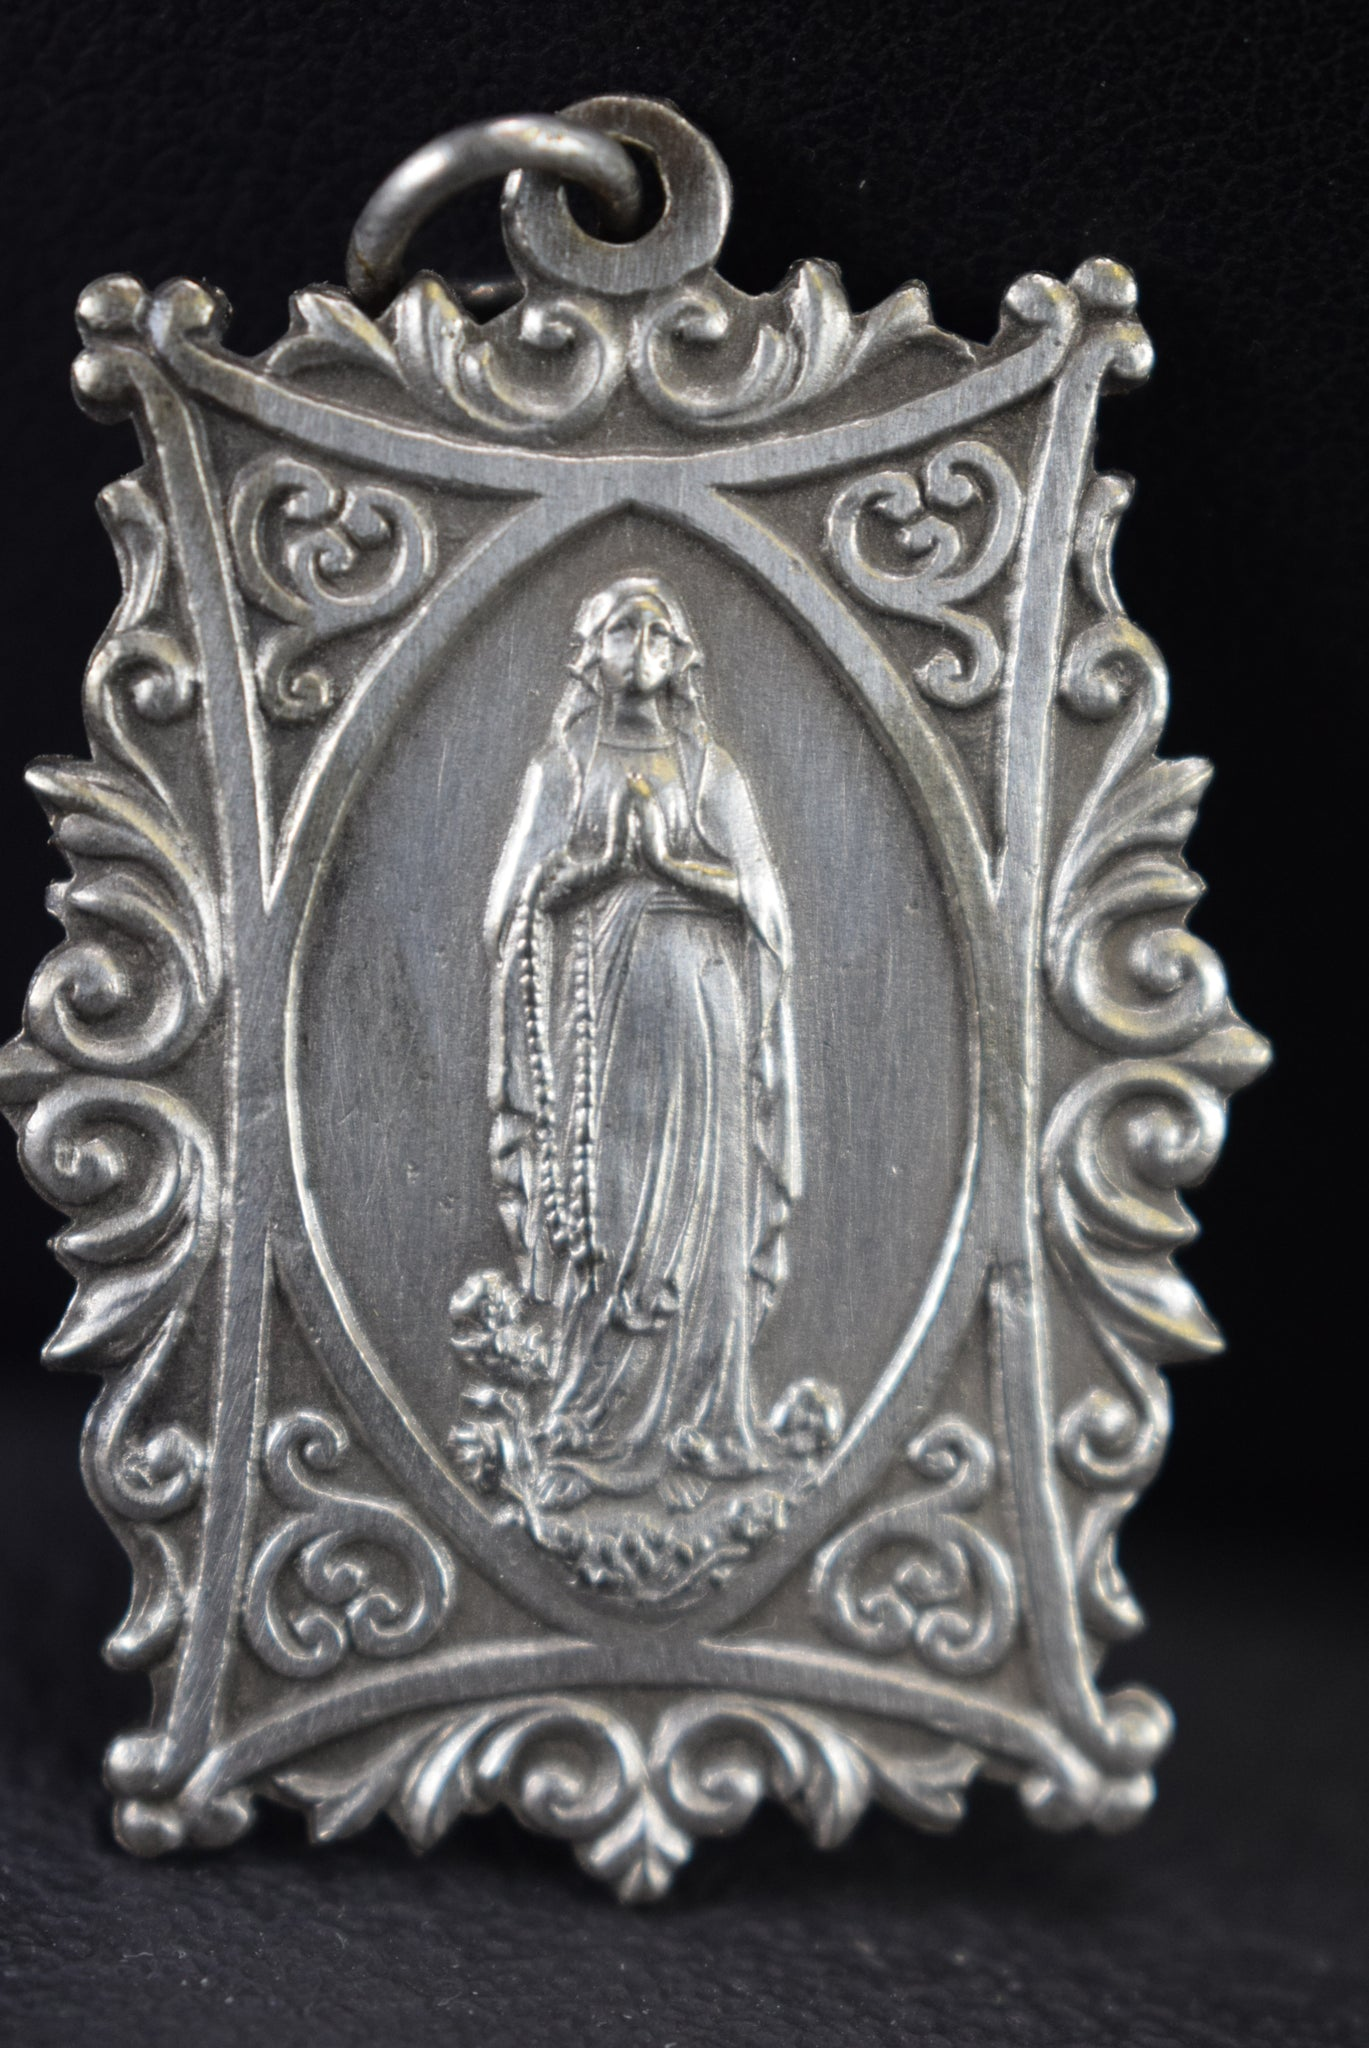 French Antique Virgin Mary Our Lady Of Lourdes Medal Pendant Charm